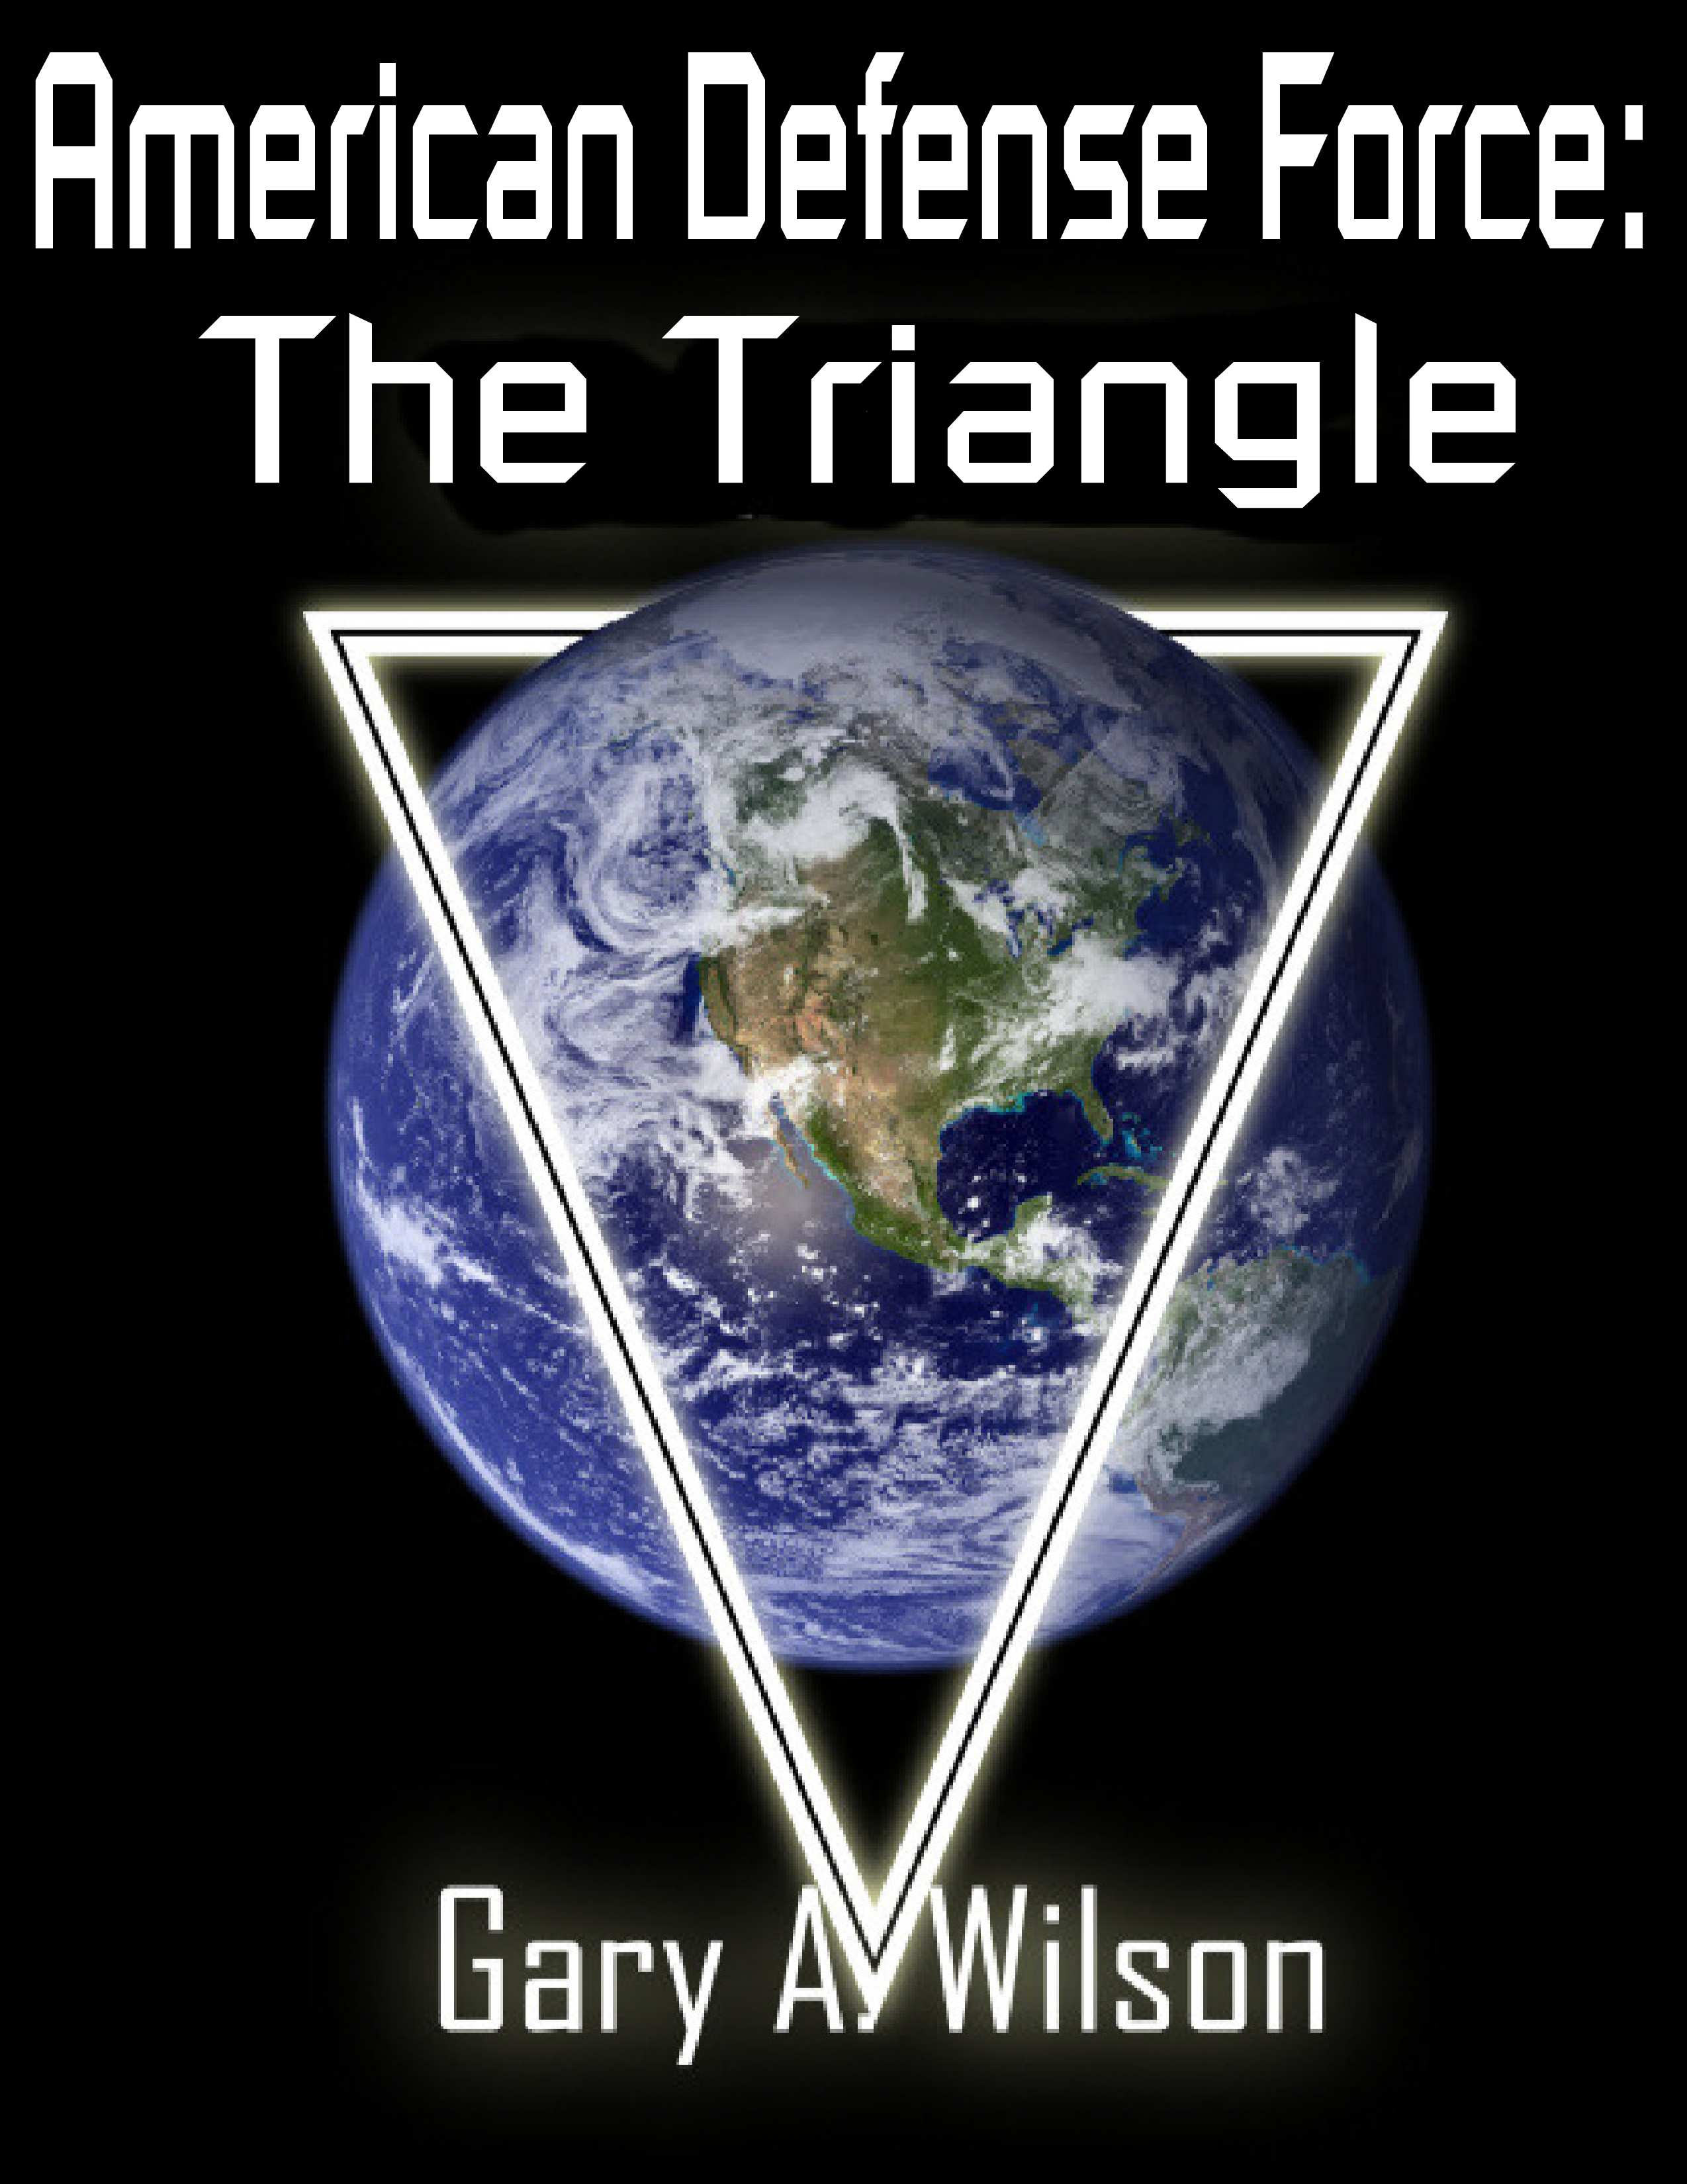 American Defense Force: The Triangle